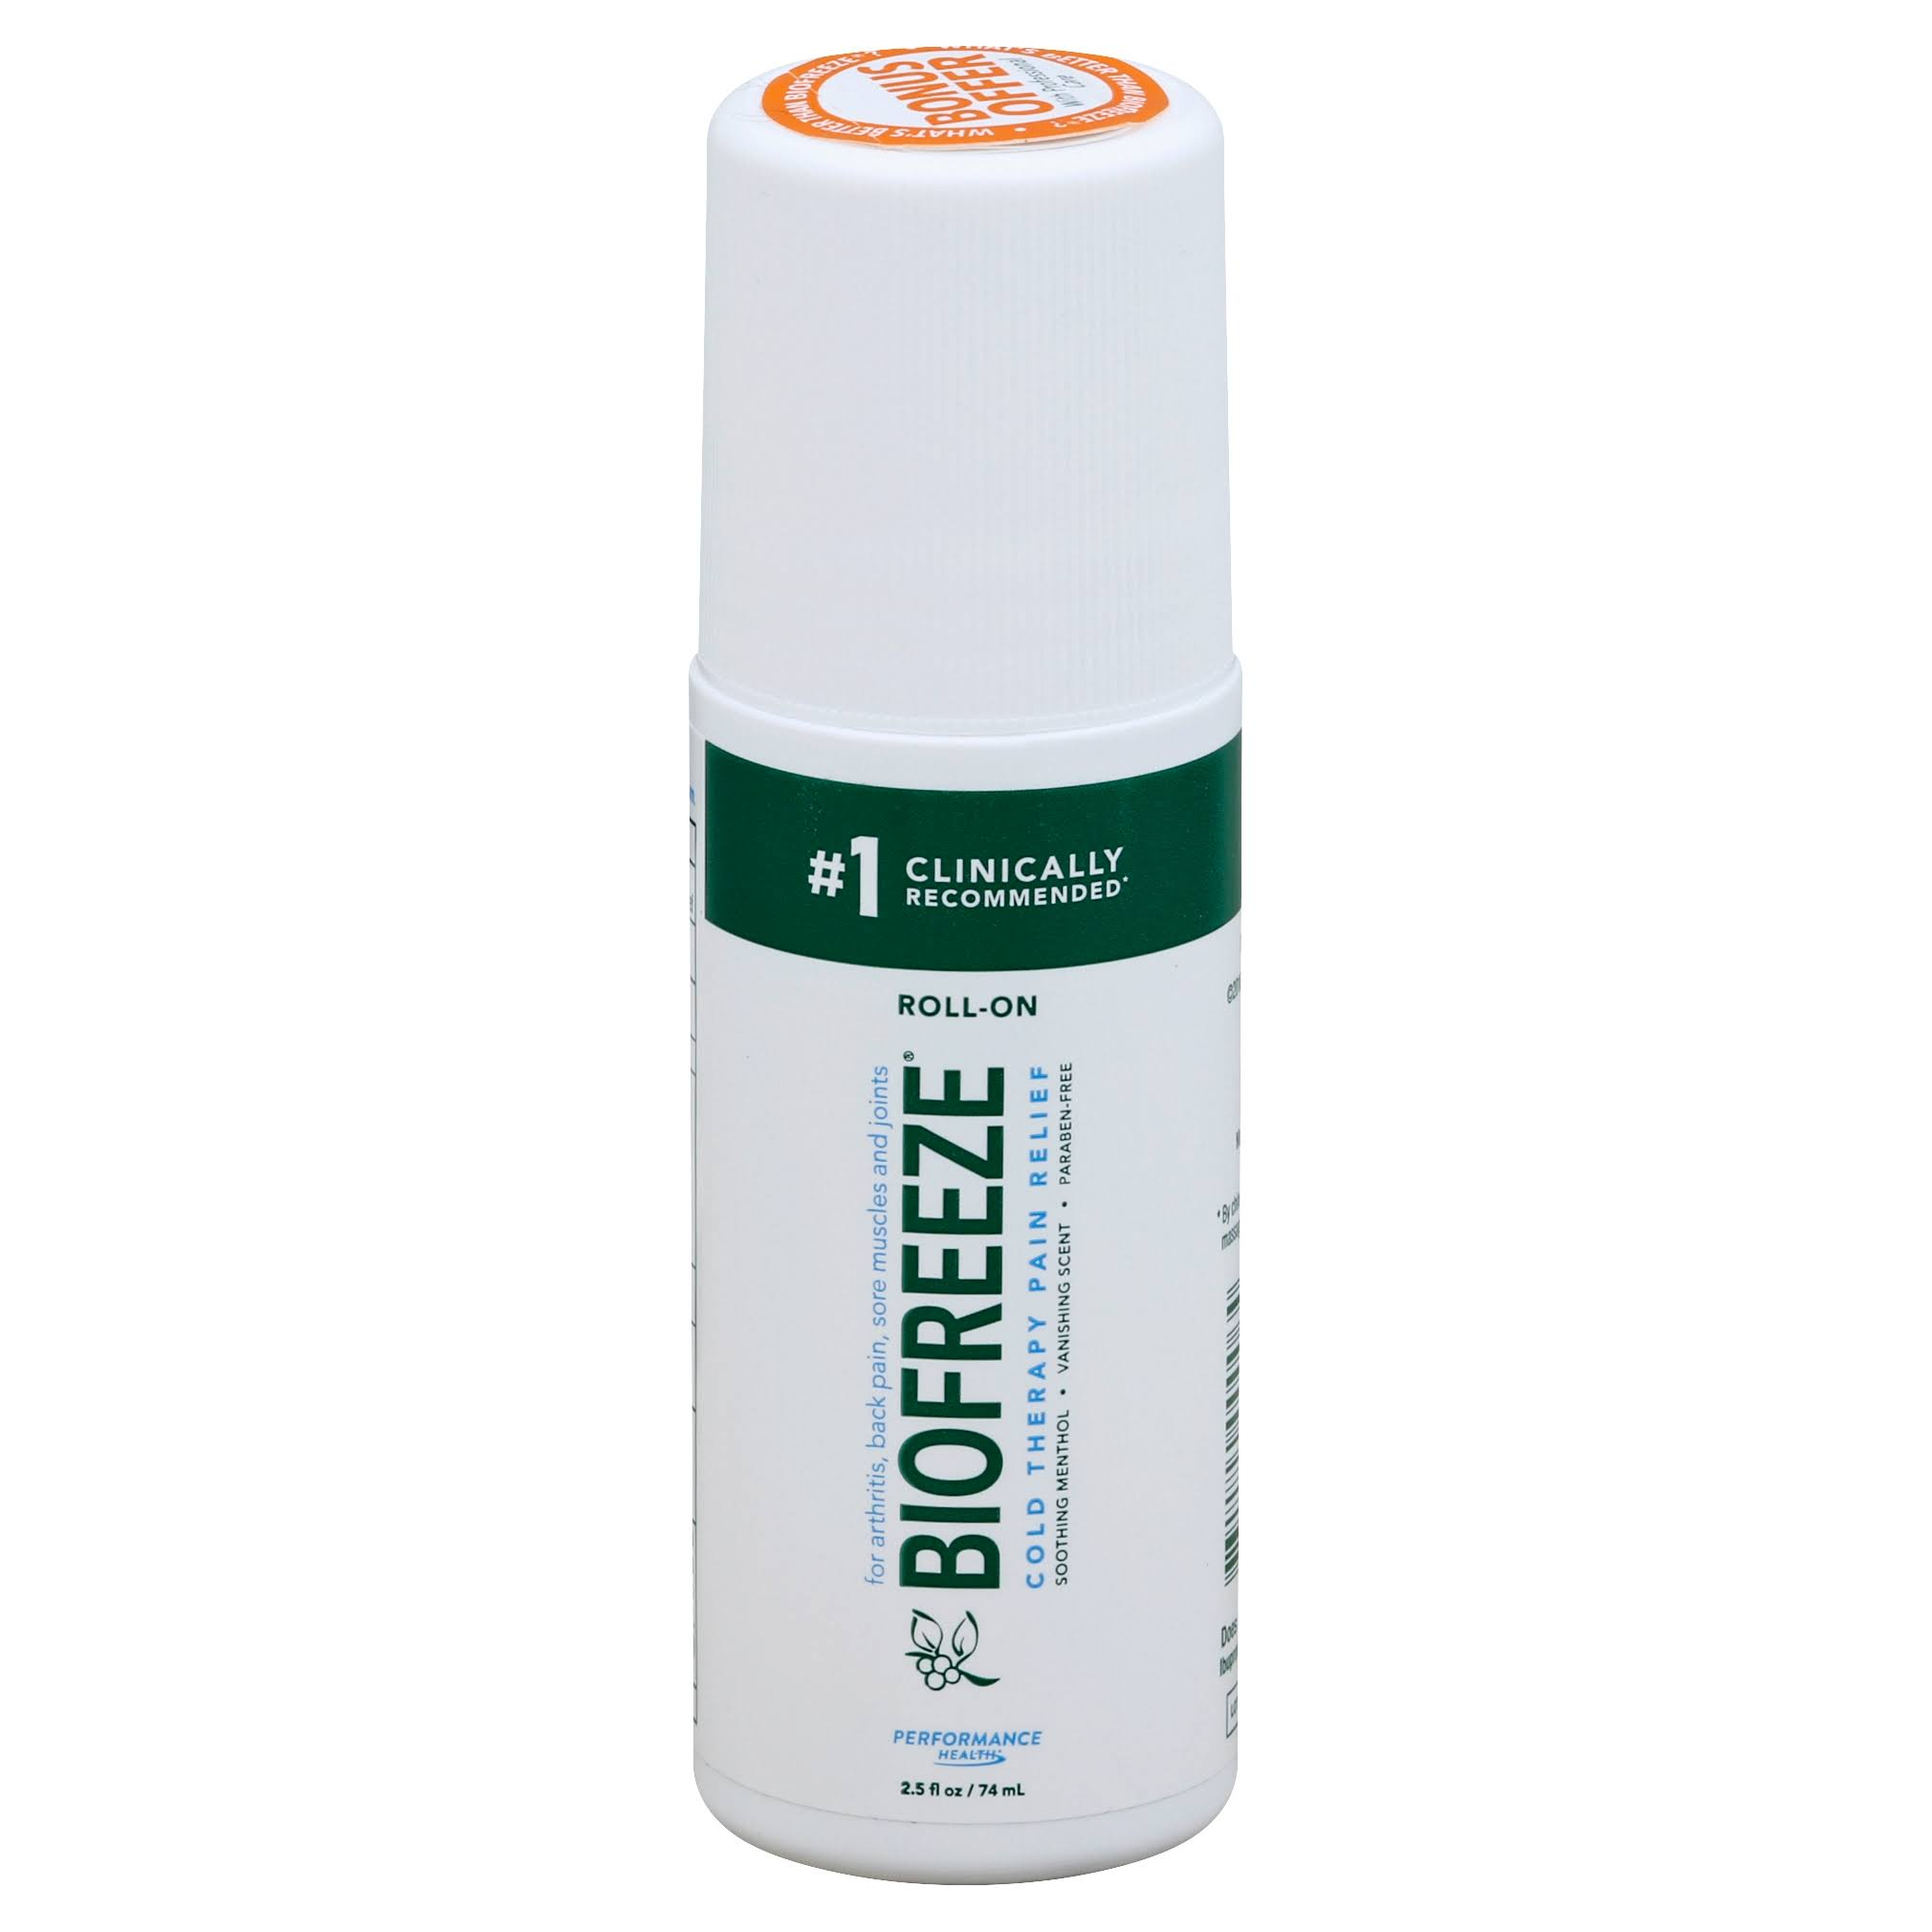 Biofreeze Cold Therapy Pain Relief Roll-On - 89ml